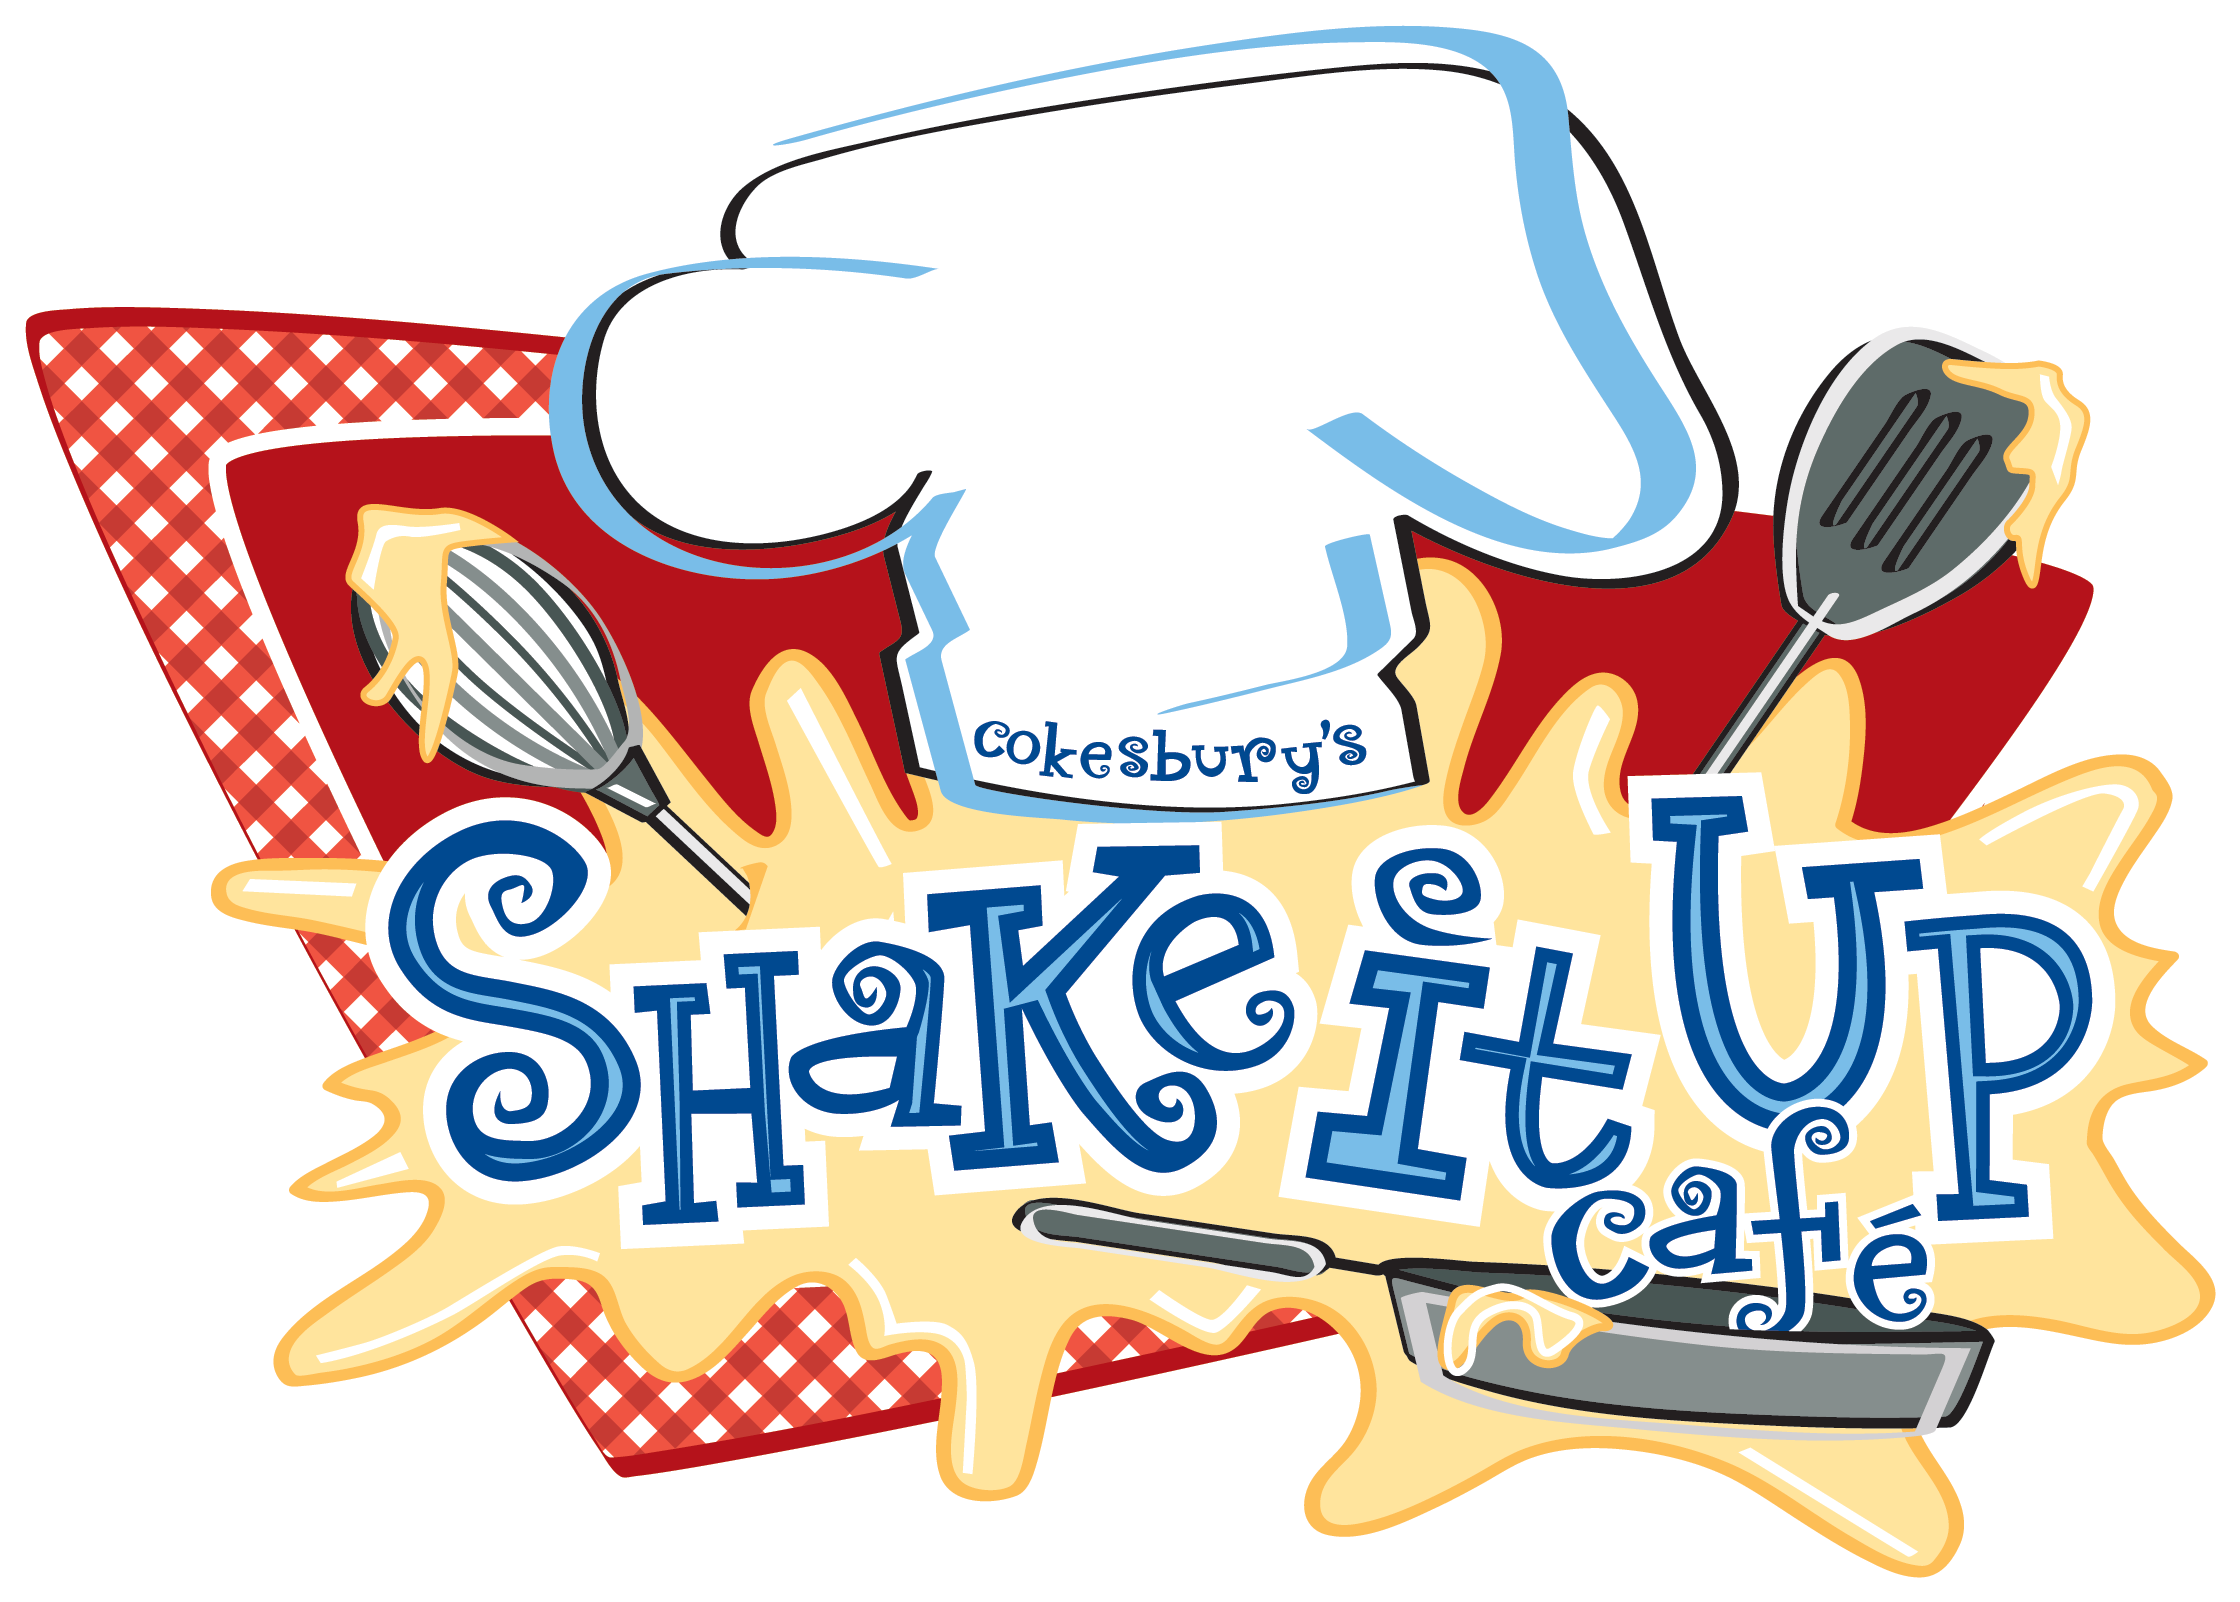 Preschool clipart logo. Shake it up cafe